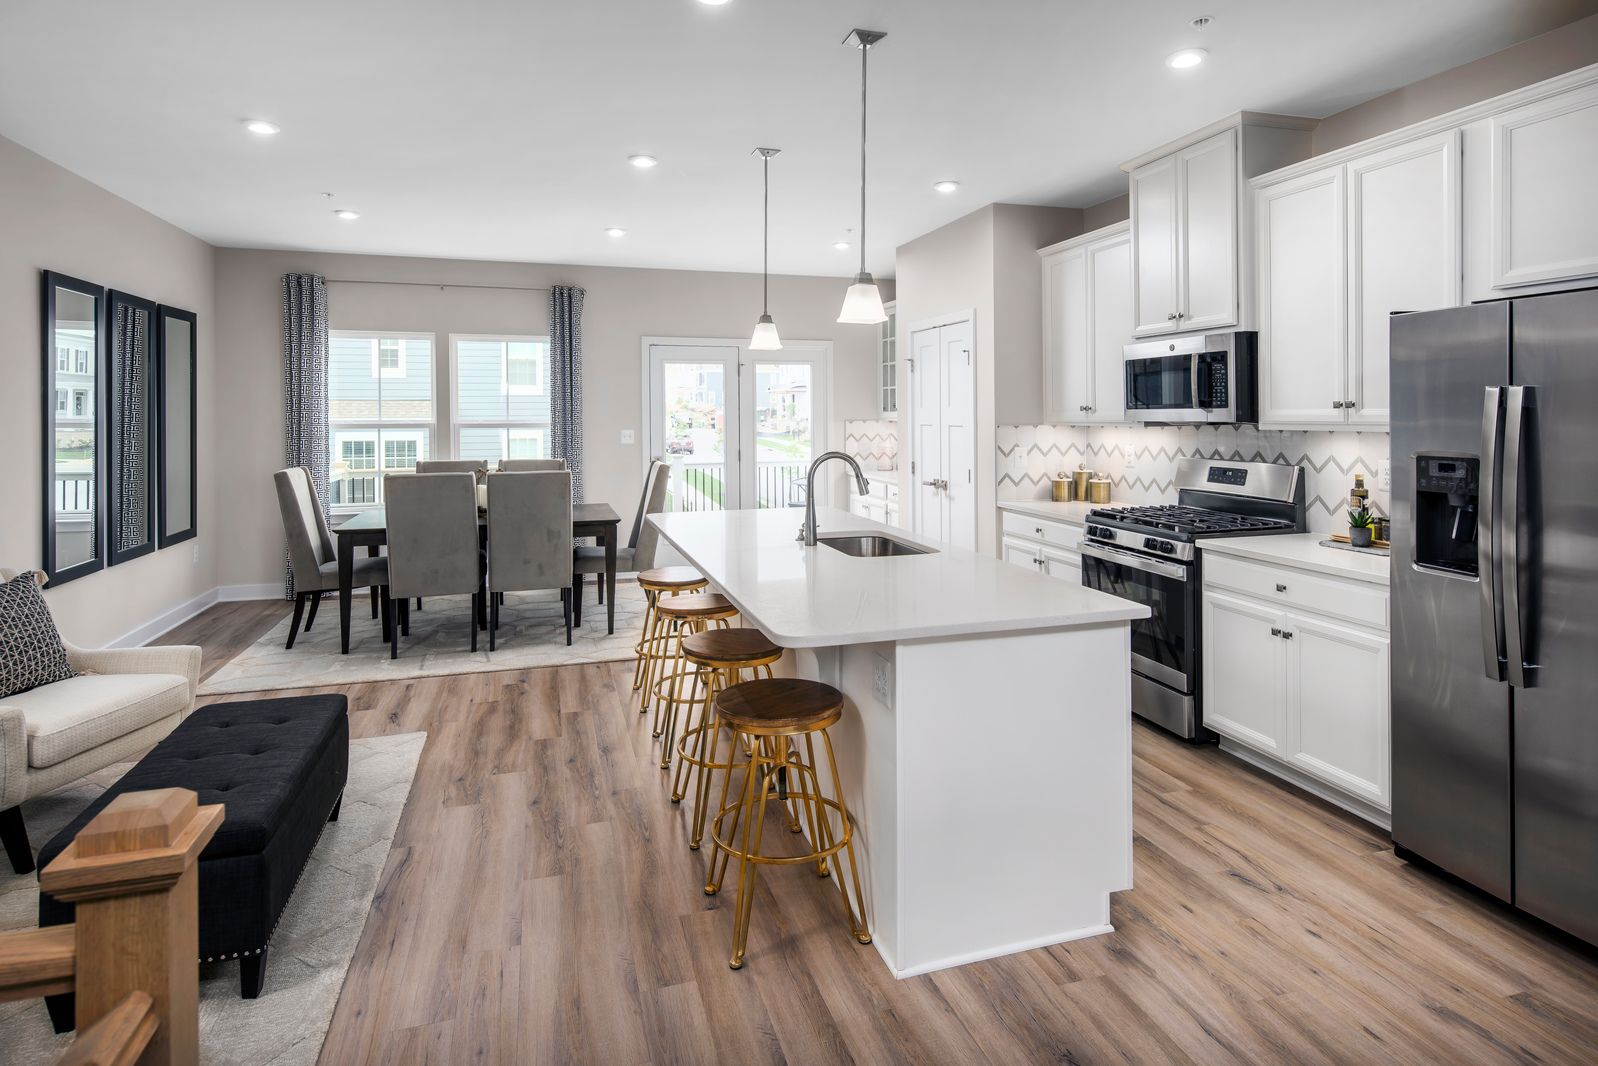 Kitchen featured in the Strauss 2-Car Garage By Ryan Homes in Baltimore, MD